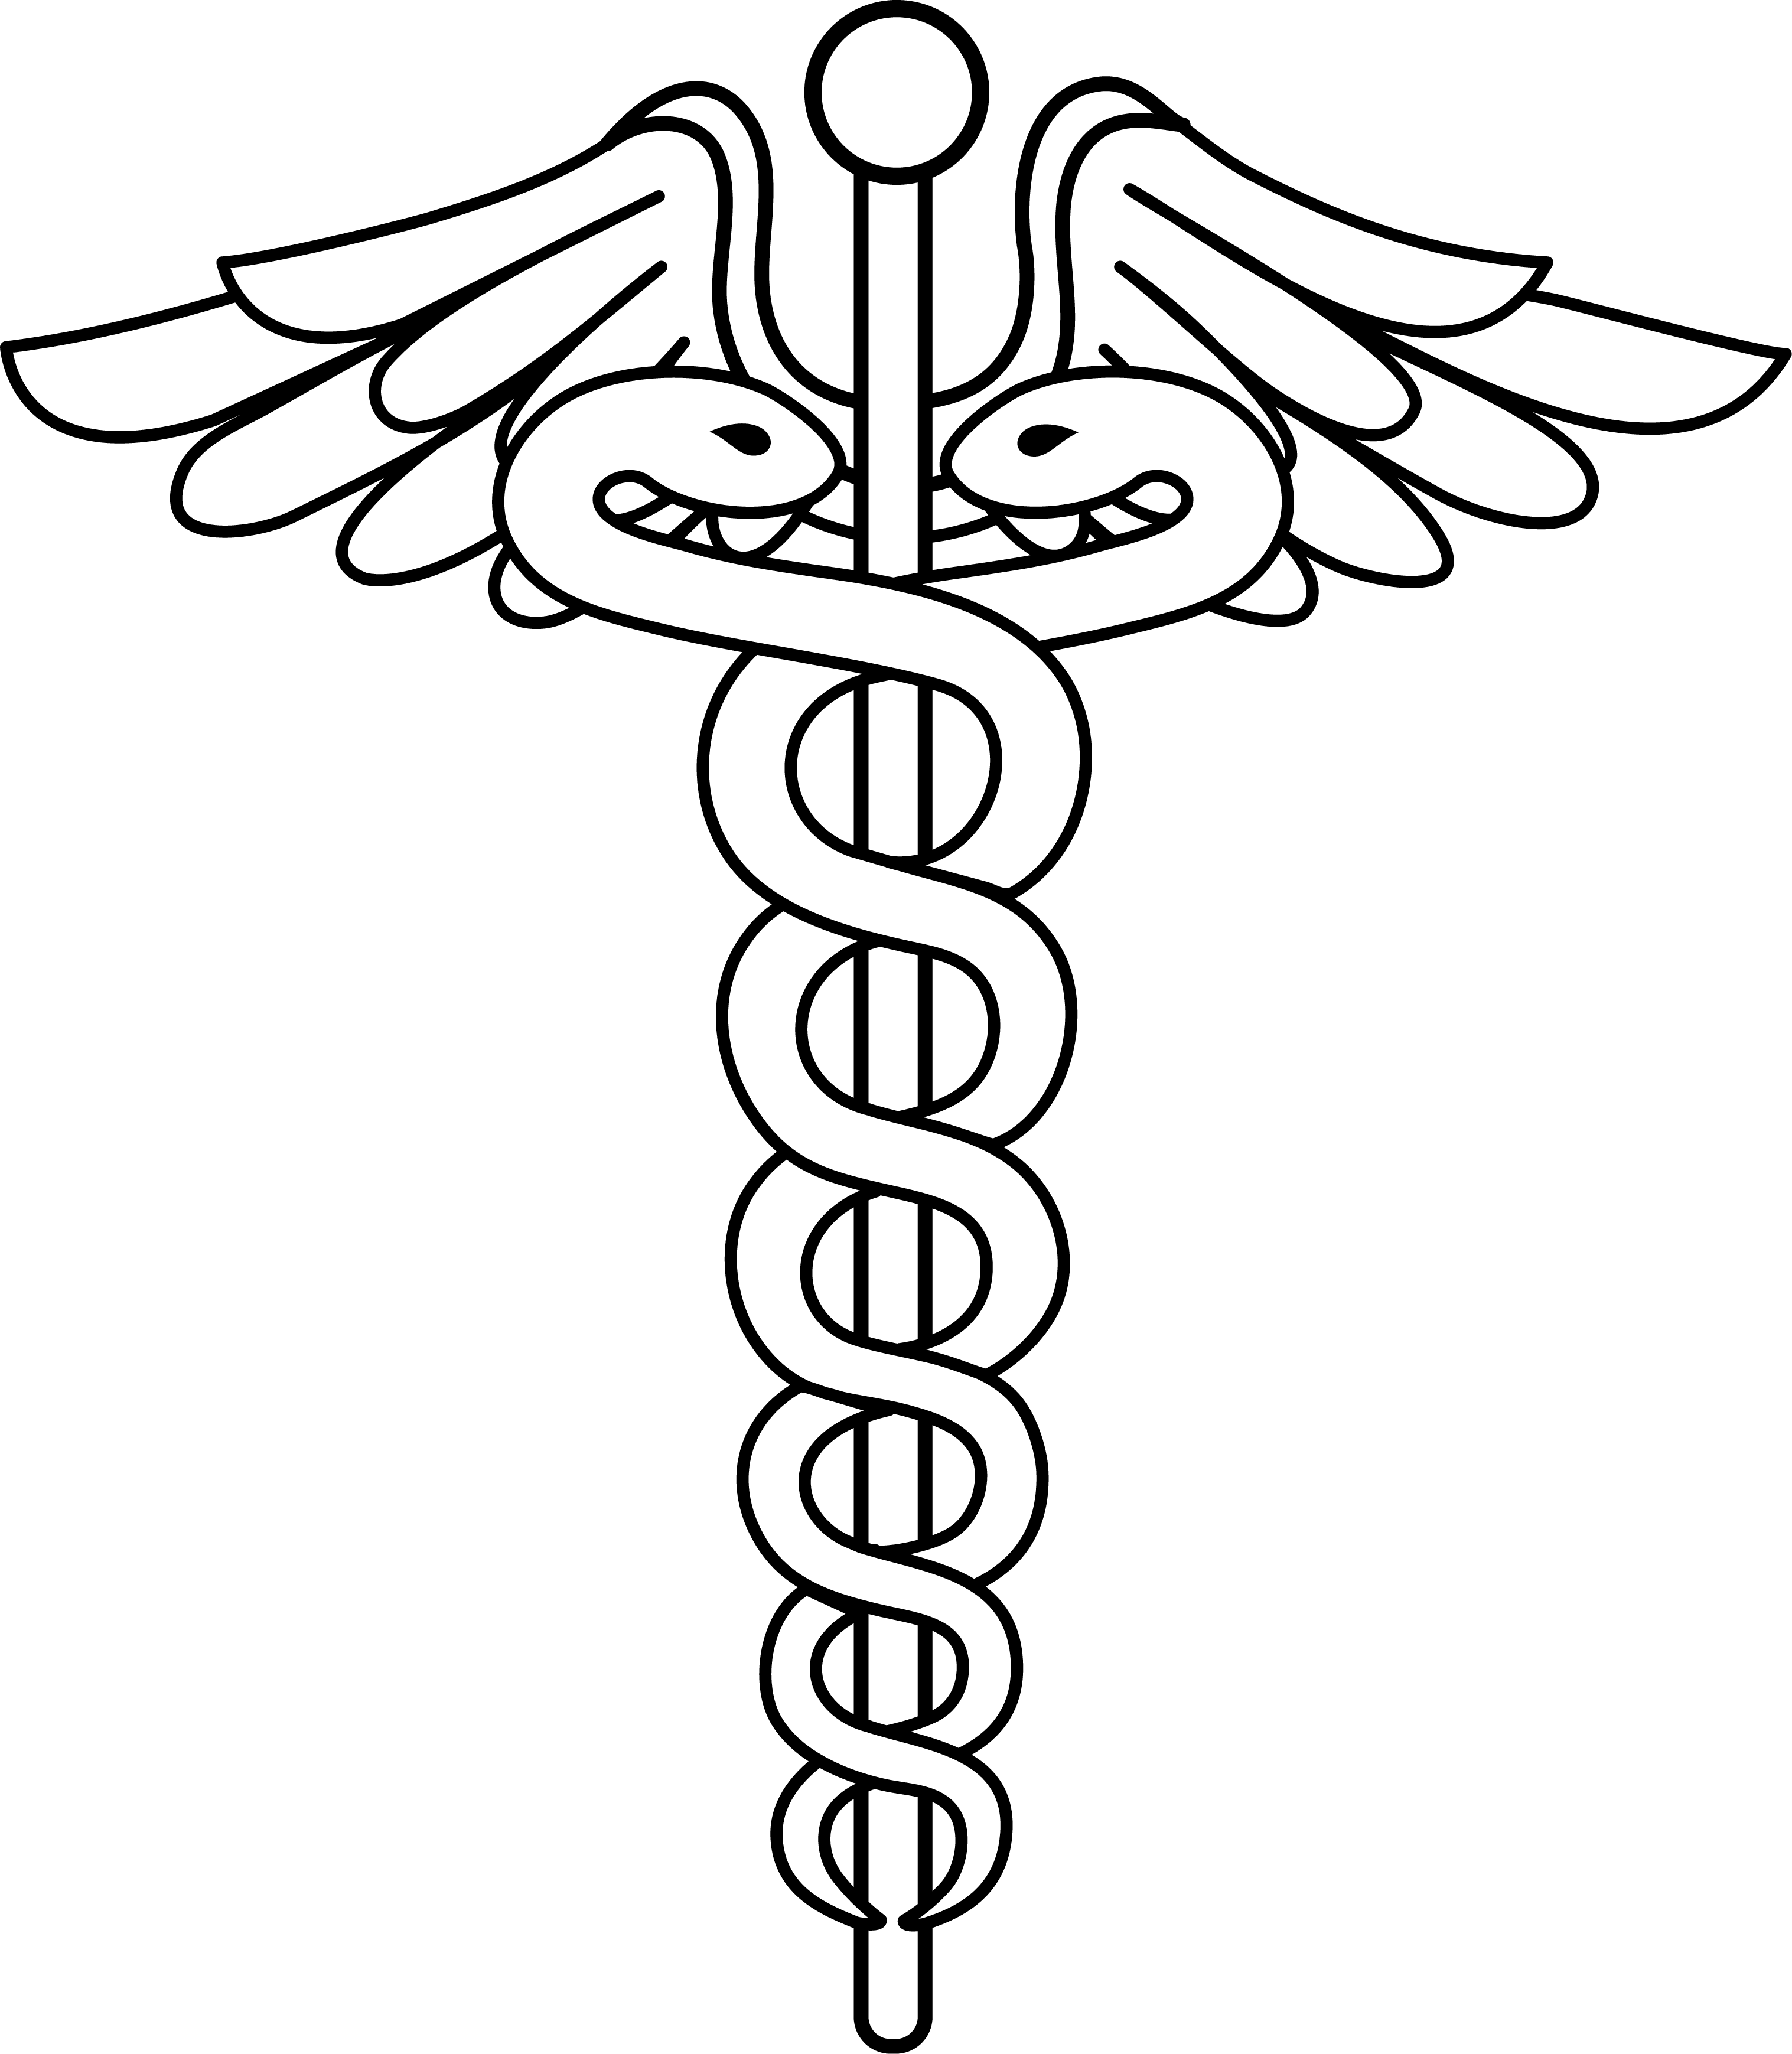 Free Doctor Logo Cliparts, Download Free Clip Art, Free Clip.